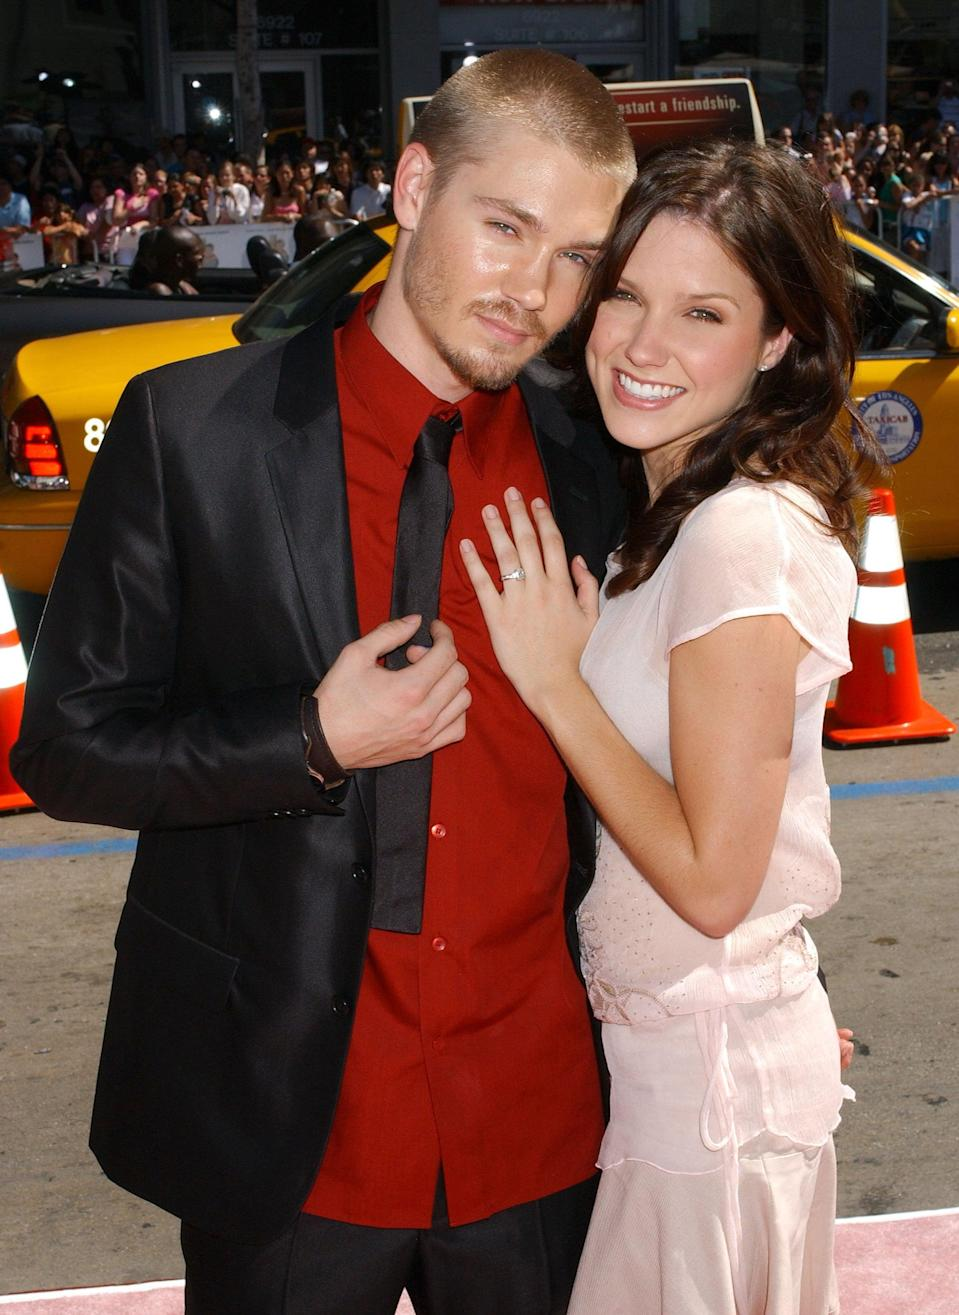 """<p>After meeting on the set of <strong>One Tree Hill </strong>in 2003, Sophia and Chad quickly fell in love and even tied the knot in 2005. Unfortunately, the couple filed for divorce only five months later, though they continued to star on the show as tumultuous couple Lucas and Brooke until Chad's departure in 2009. </p> <p>The former couple attempted to keep the peace on set following their divorce, but Sophia told <strong>Cosmopolitan</strong> in January 2017 that <a href=""""http://www.cosmopolitan.com/sex-love/a8579094/why-to-stop-seeking-the-one/"""" class=""""link rapid-noclick-resp"""" rel=""""nofollow noopener"""" target=""""_blank"""" data-ylk=""""slk:the experience was pretty difficult"""">the experience was pretty difficult</a>, and """"the trauma of [the breakup] was amplified by how public it became."""" Later, during a June 2018 appearance on <strong>Watch What Happens Live With Andy Cohen</strong>, <a href=""""http://www.bravotv.com/watch-what-happens-live-with-andy-cohen/season-11/videos/sophia-dishes-on-her-ex"""" class=""""link rapid-noclick-resp"""" rel=""""nofollow noopener"""" target=""""_blank"""" data-ylk=""""slk:Sophia said the relationship was a mistake"""">Sophia said the relationship was a mistake</a>. """"We were two stupid kids who had no business being in a relationship in the first place,"""" she added. </p>"""